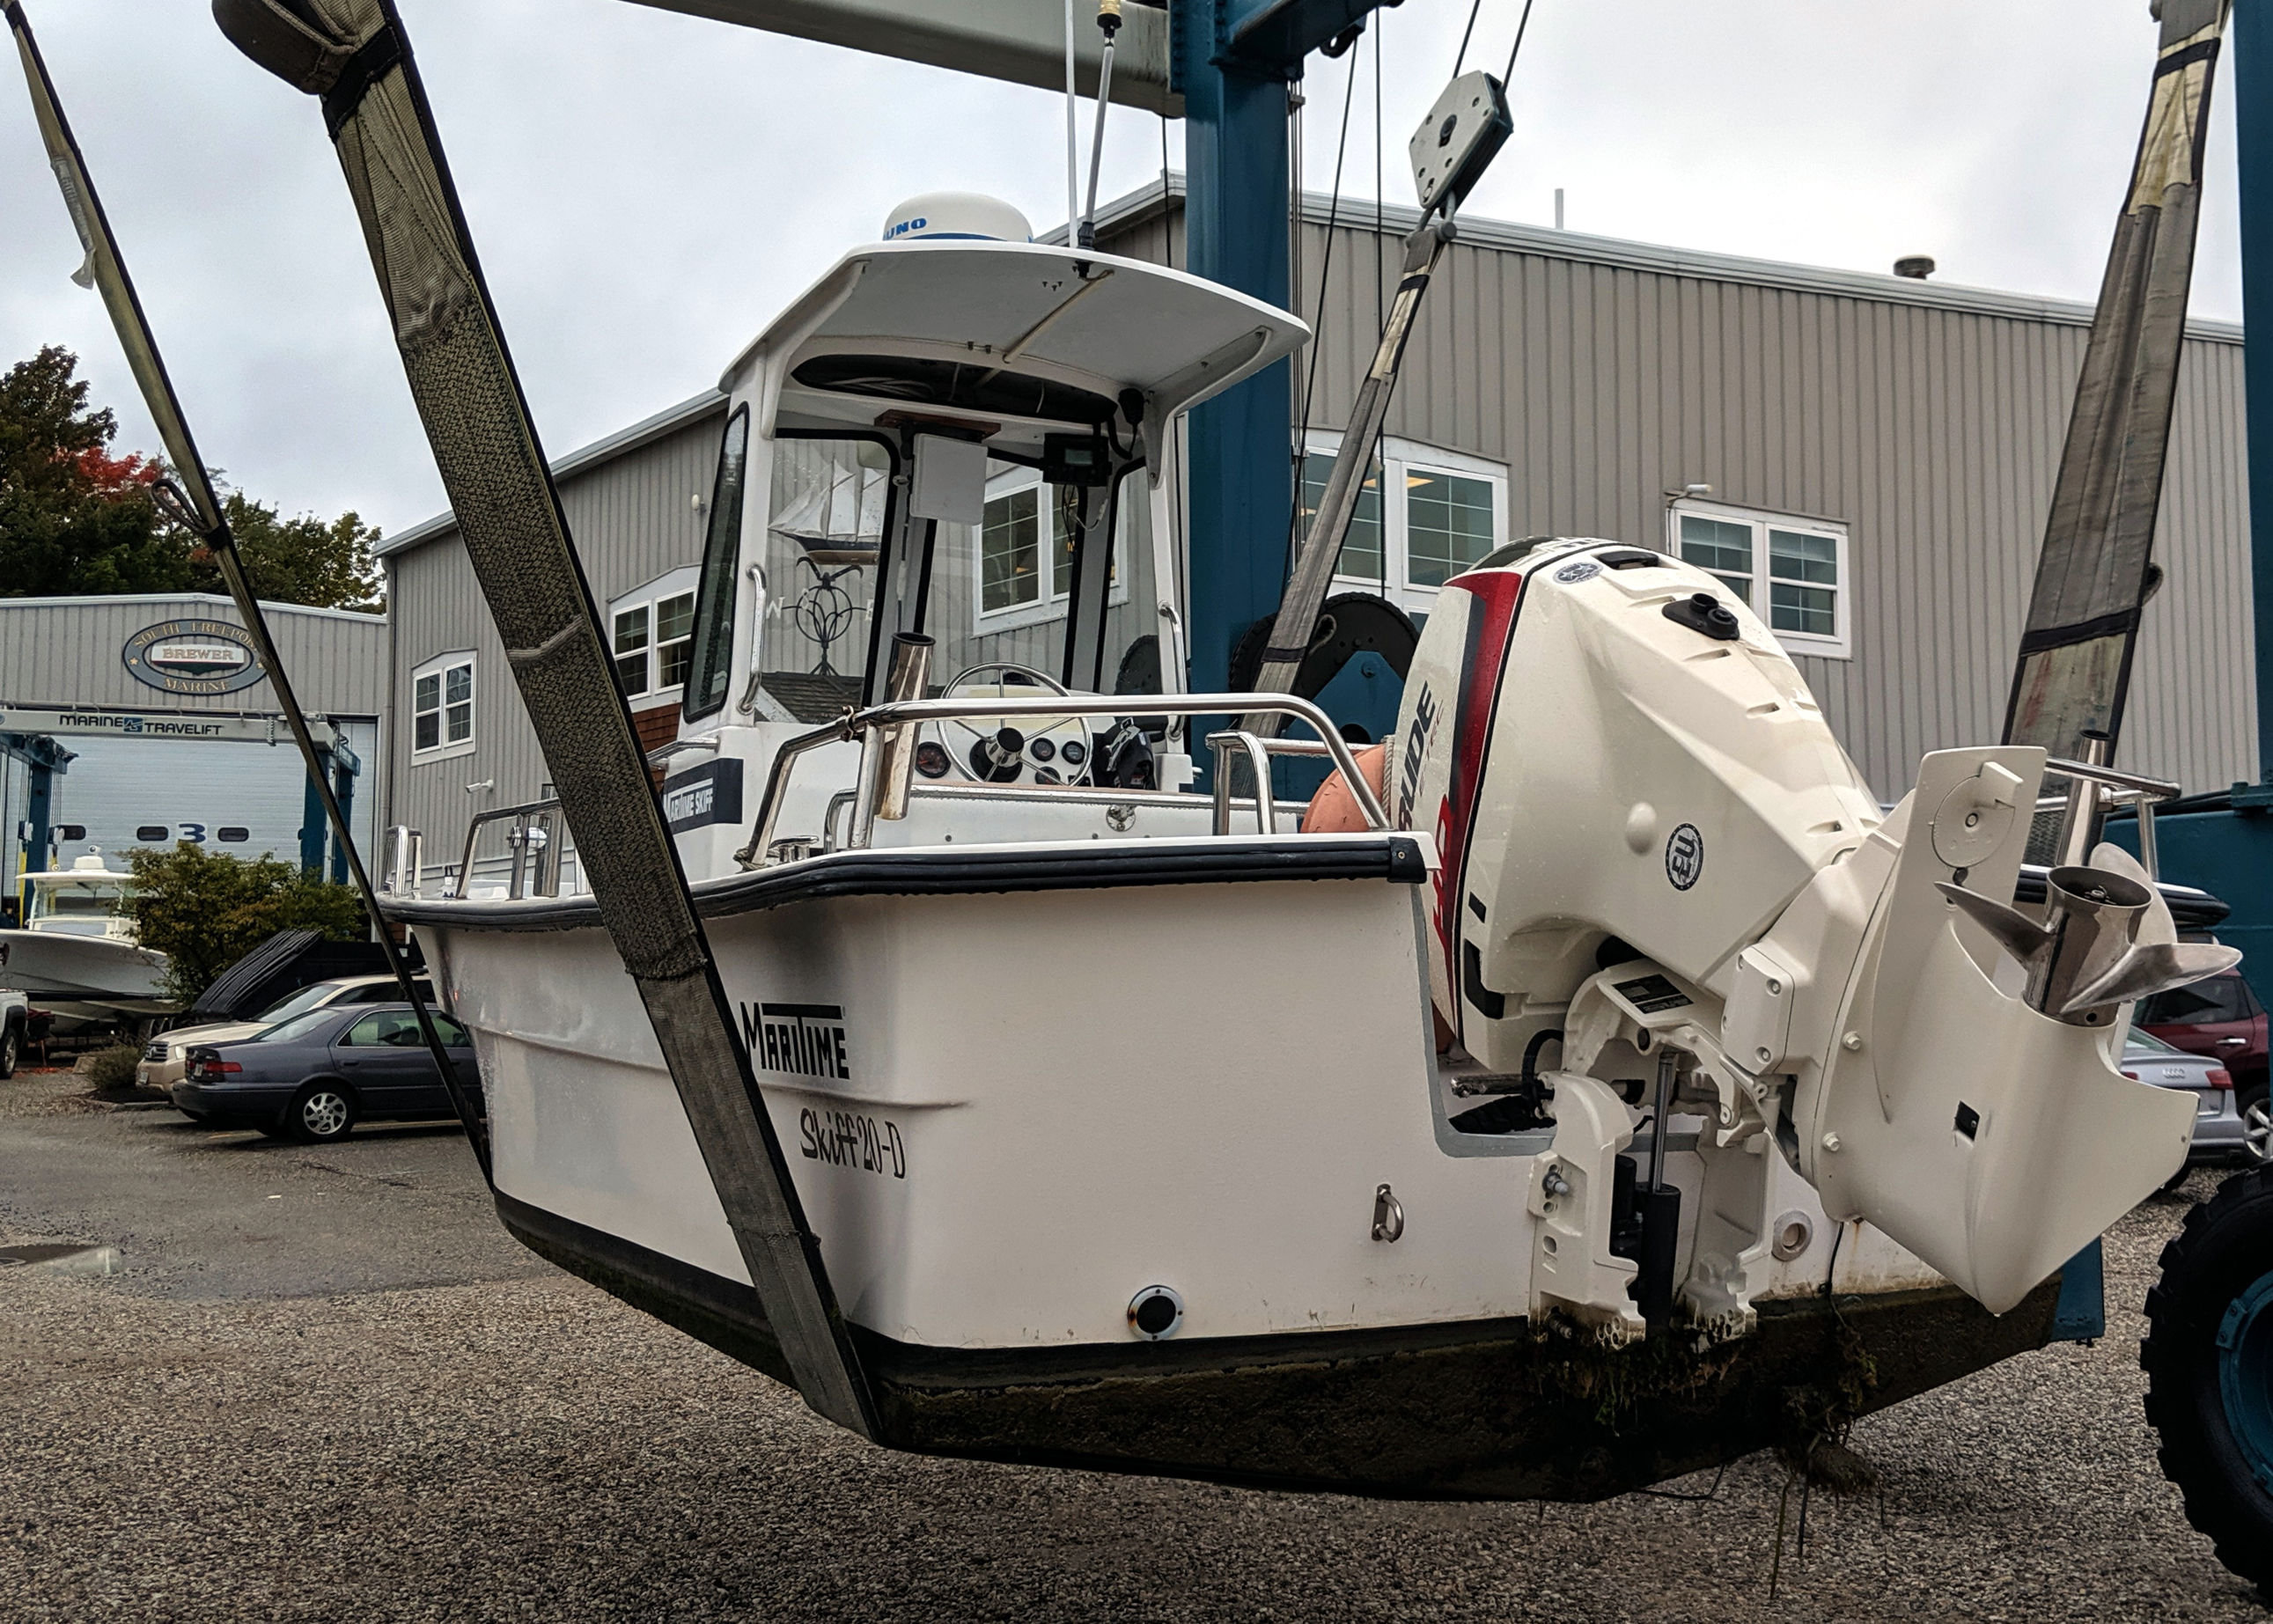 Gizmo Junior is 2000 Maritime Skiff 20-D with a 2019 Evinrude Etec HO 115